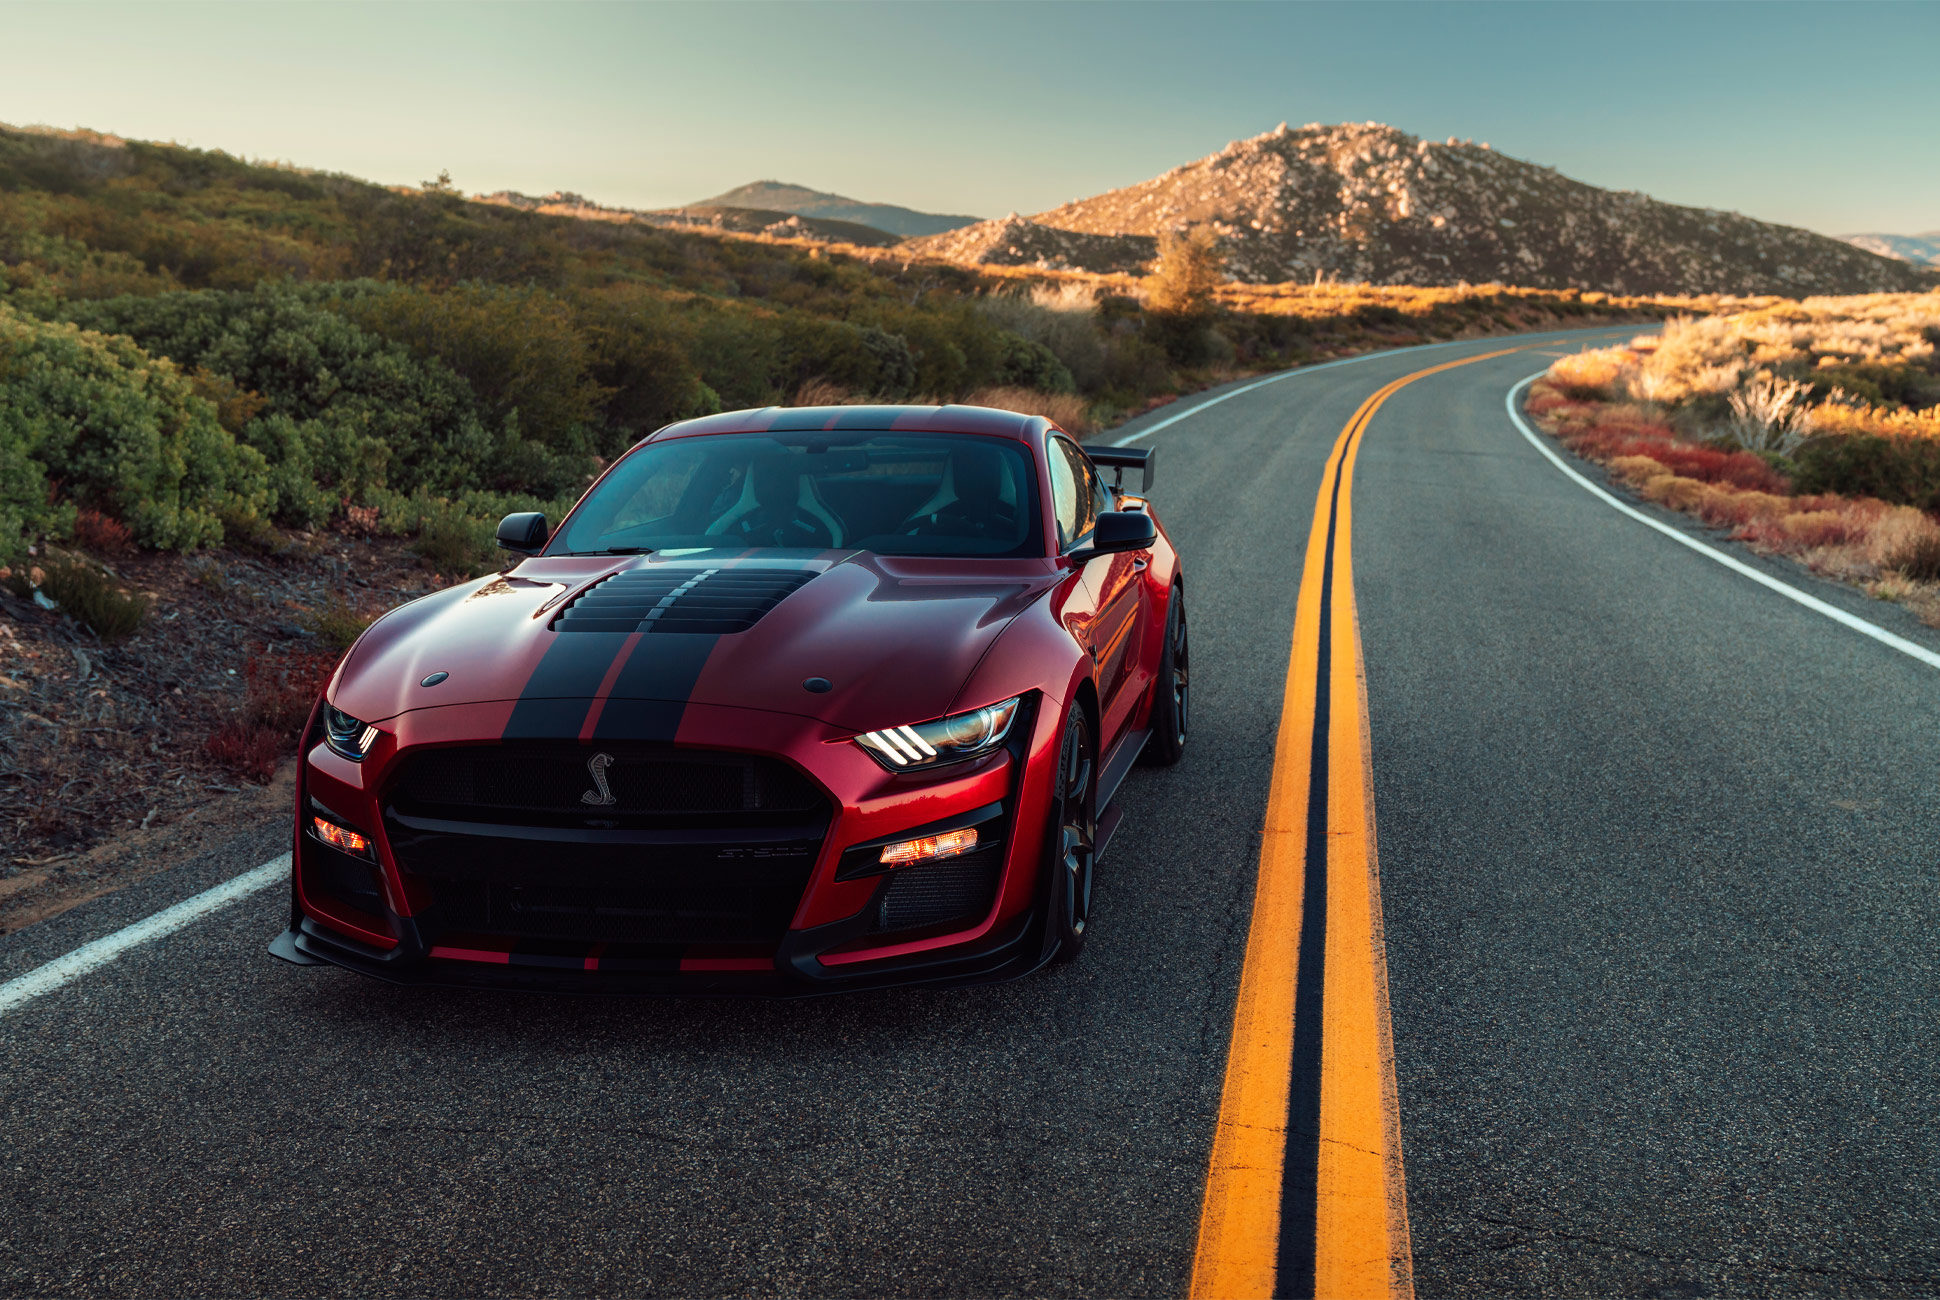 94 The 2020 Ford Mustang Shelby Gt500 Wallpaper